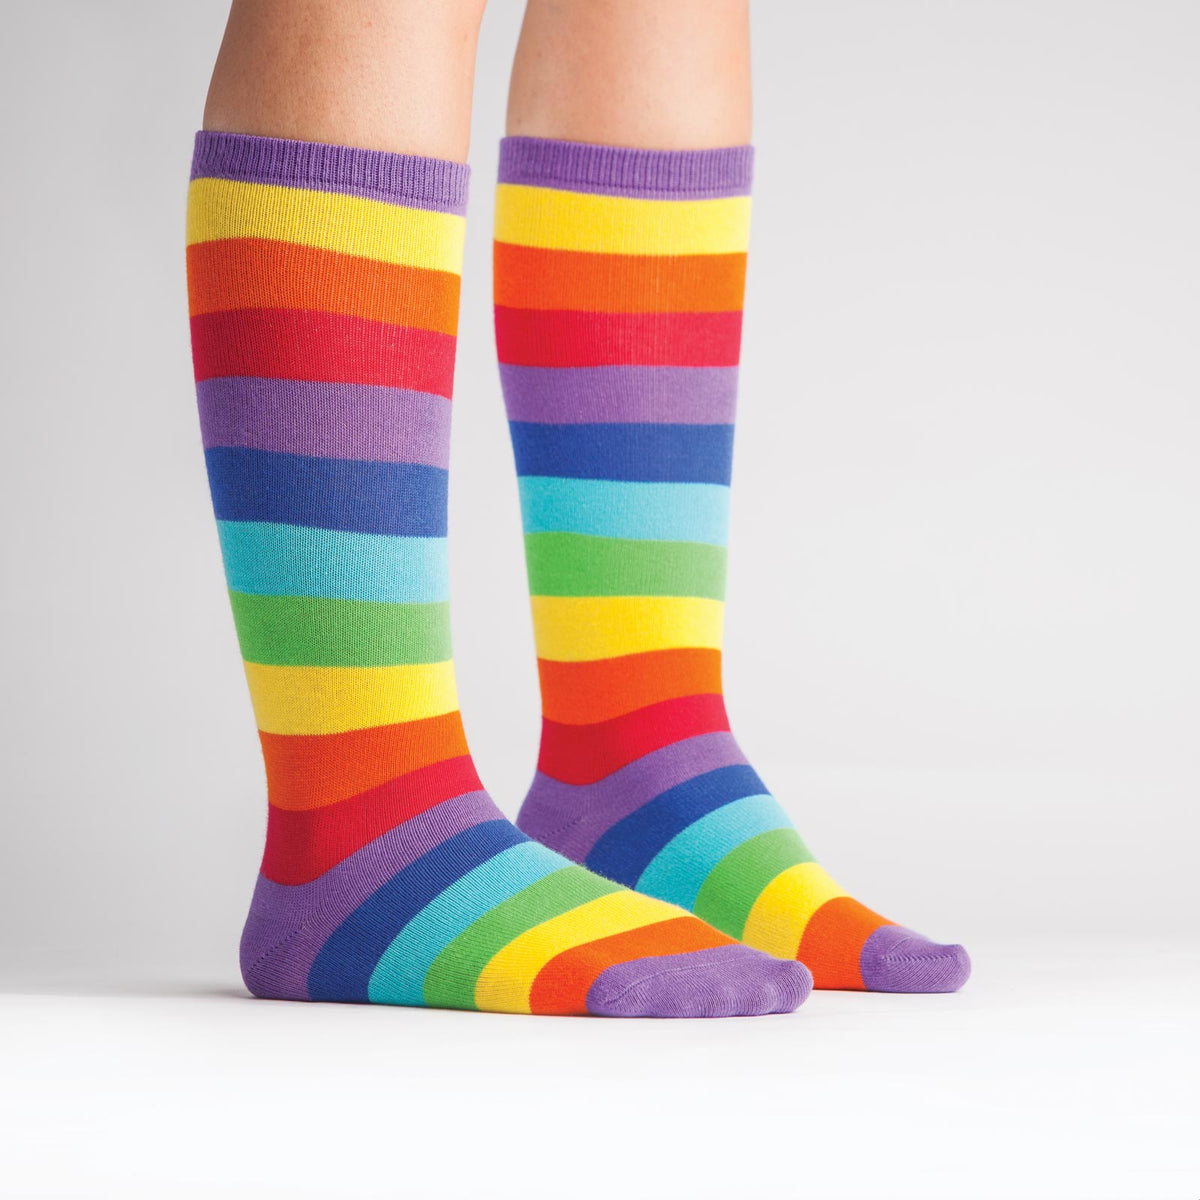 Brighten any rainy day with these rainbow striped knee-high socks for kids!